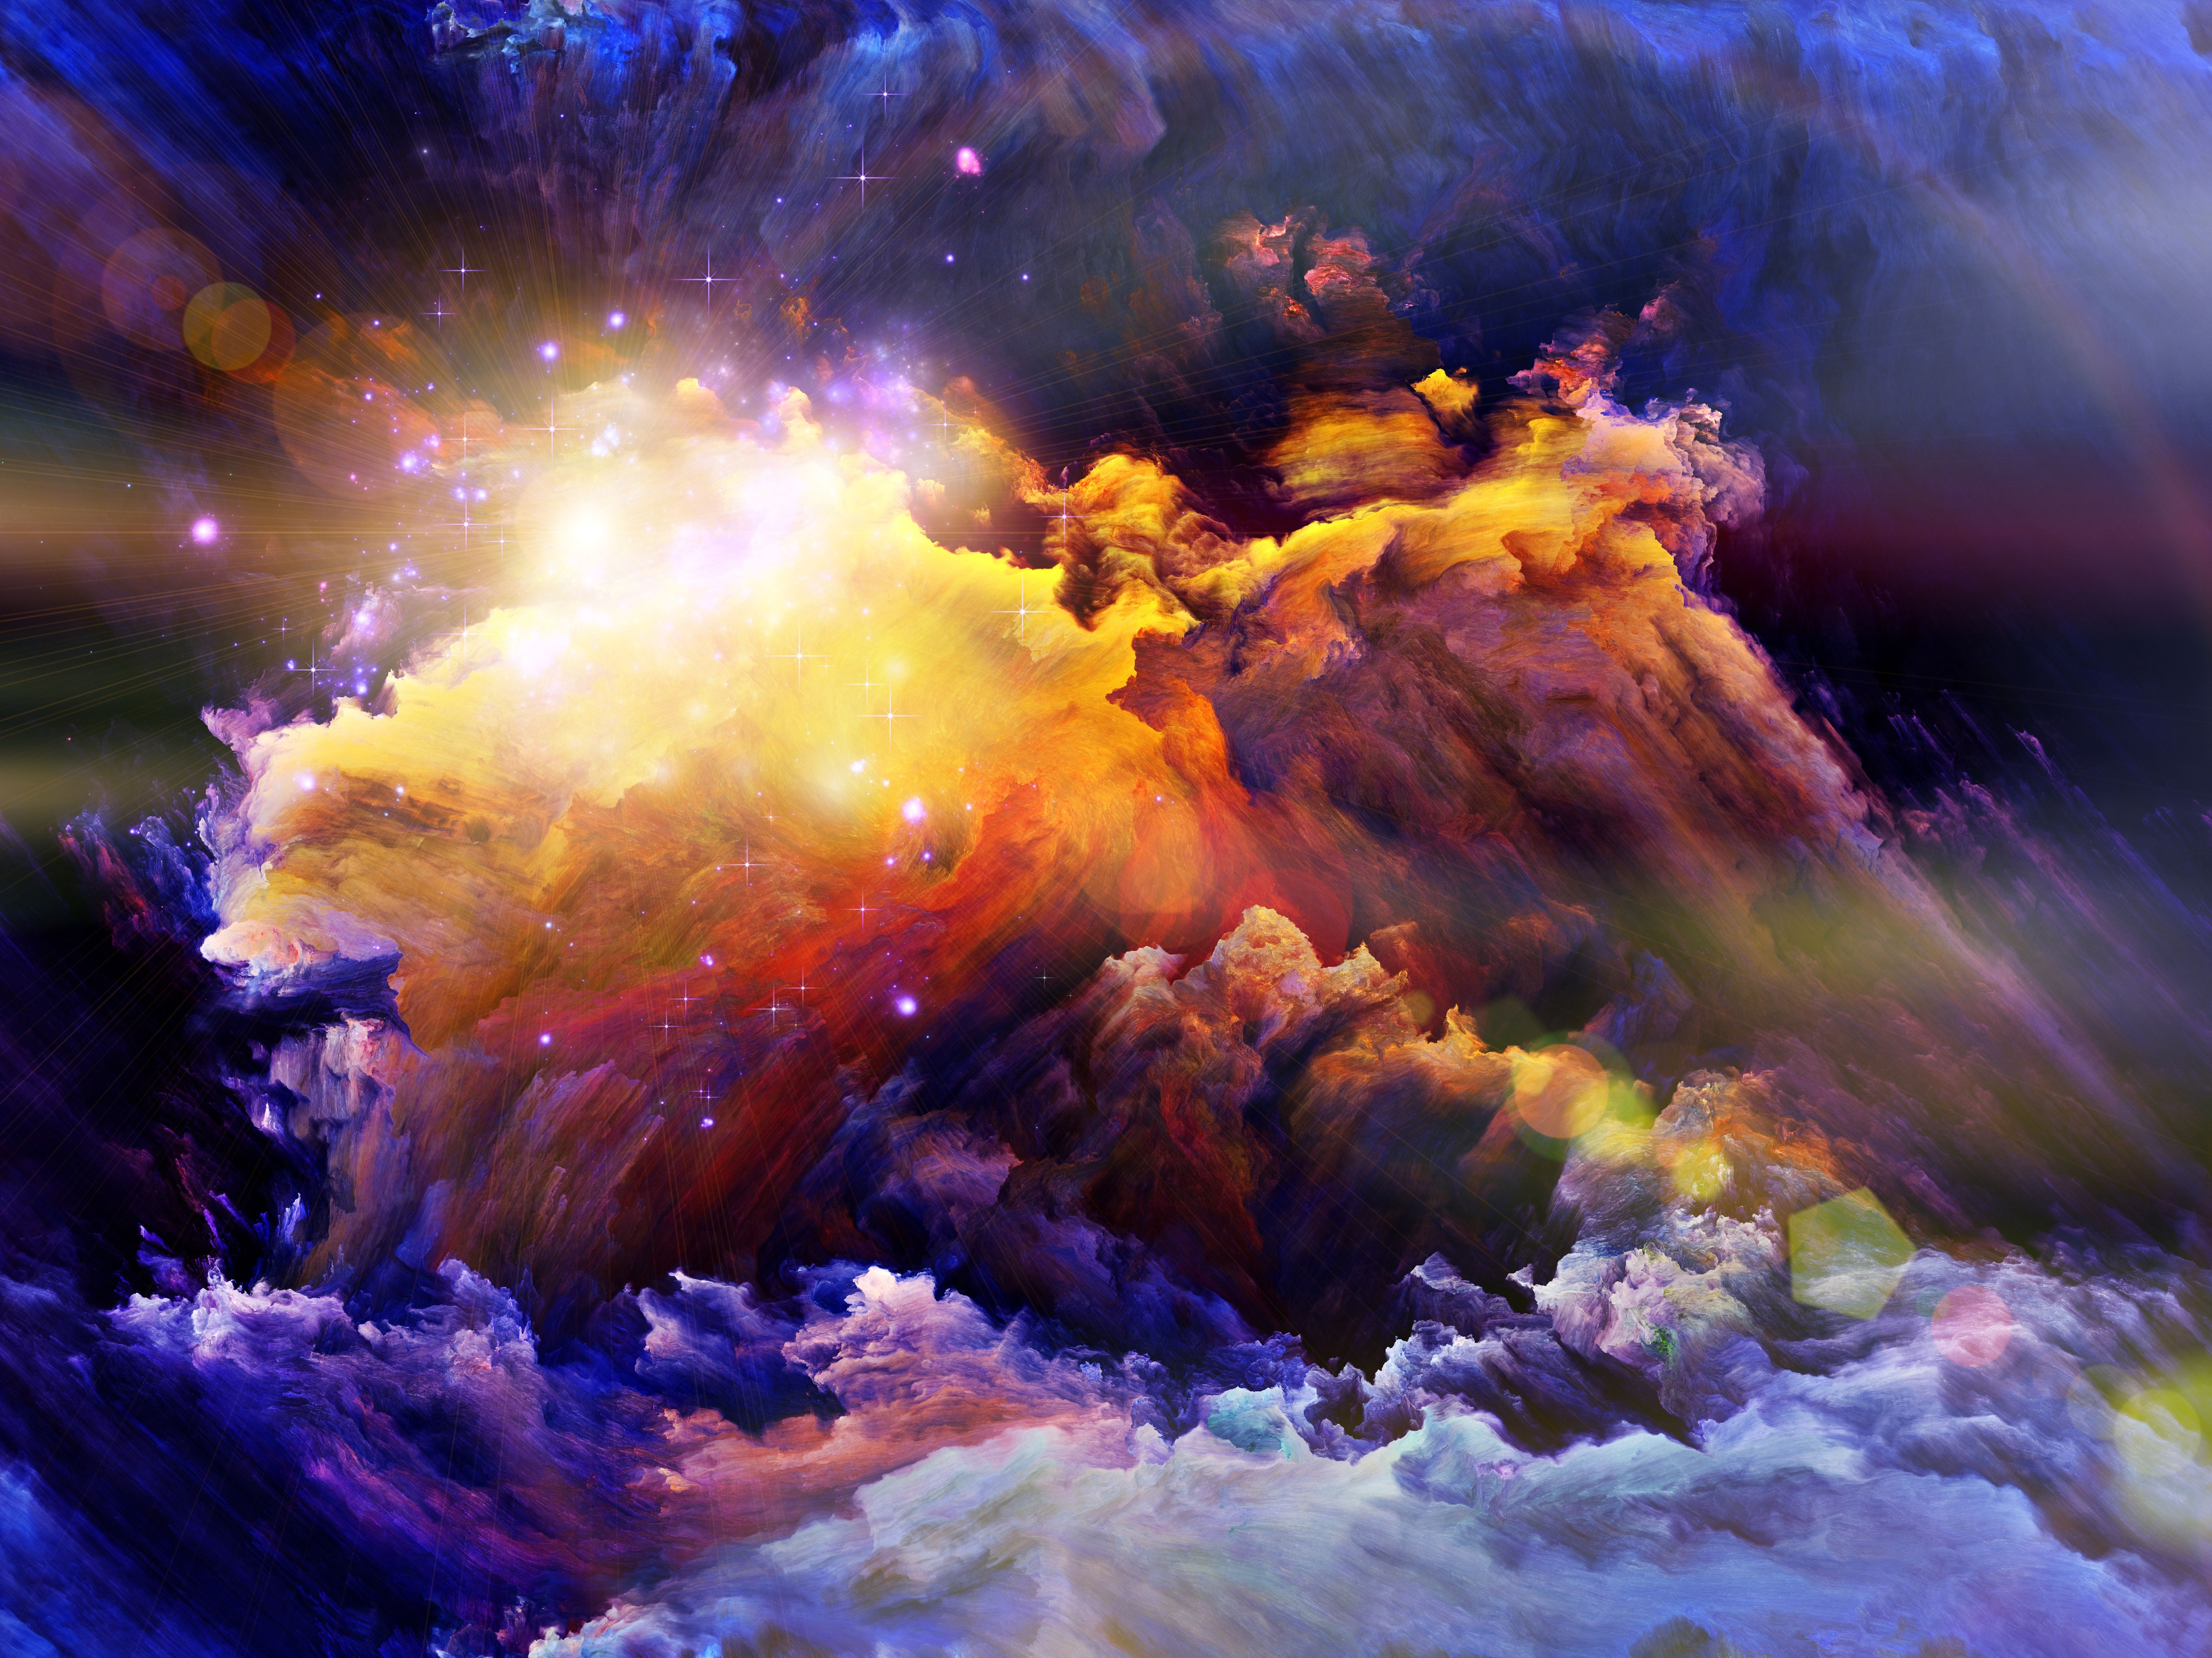 Colourful Fantasy Cloud Backgrounds: Explosion, Milky Way, Ink, Brightness, Smoke, Cloud